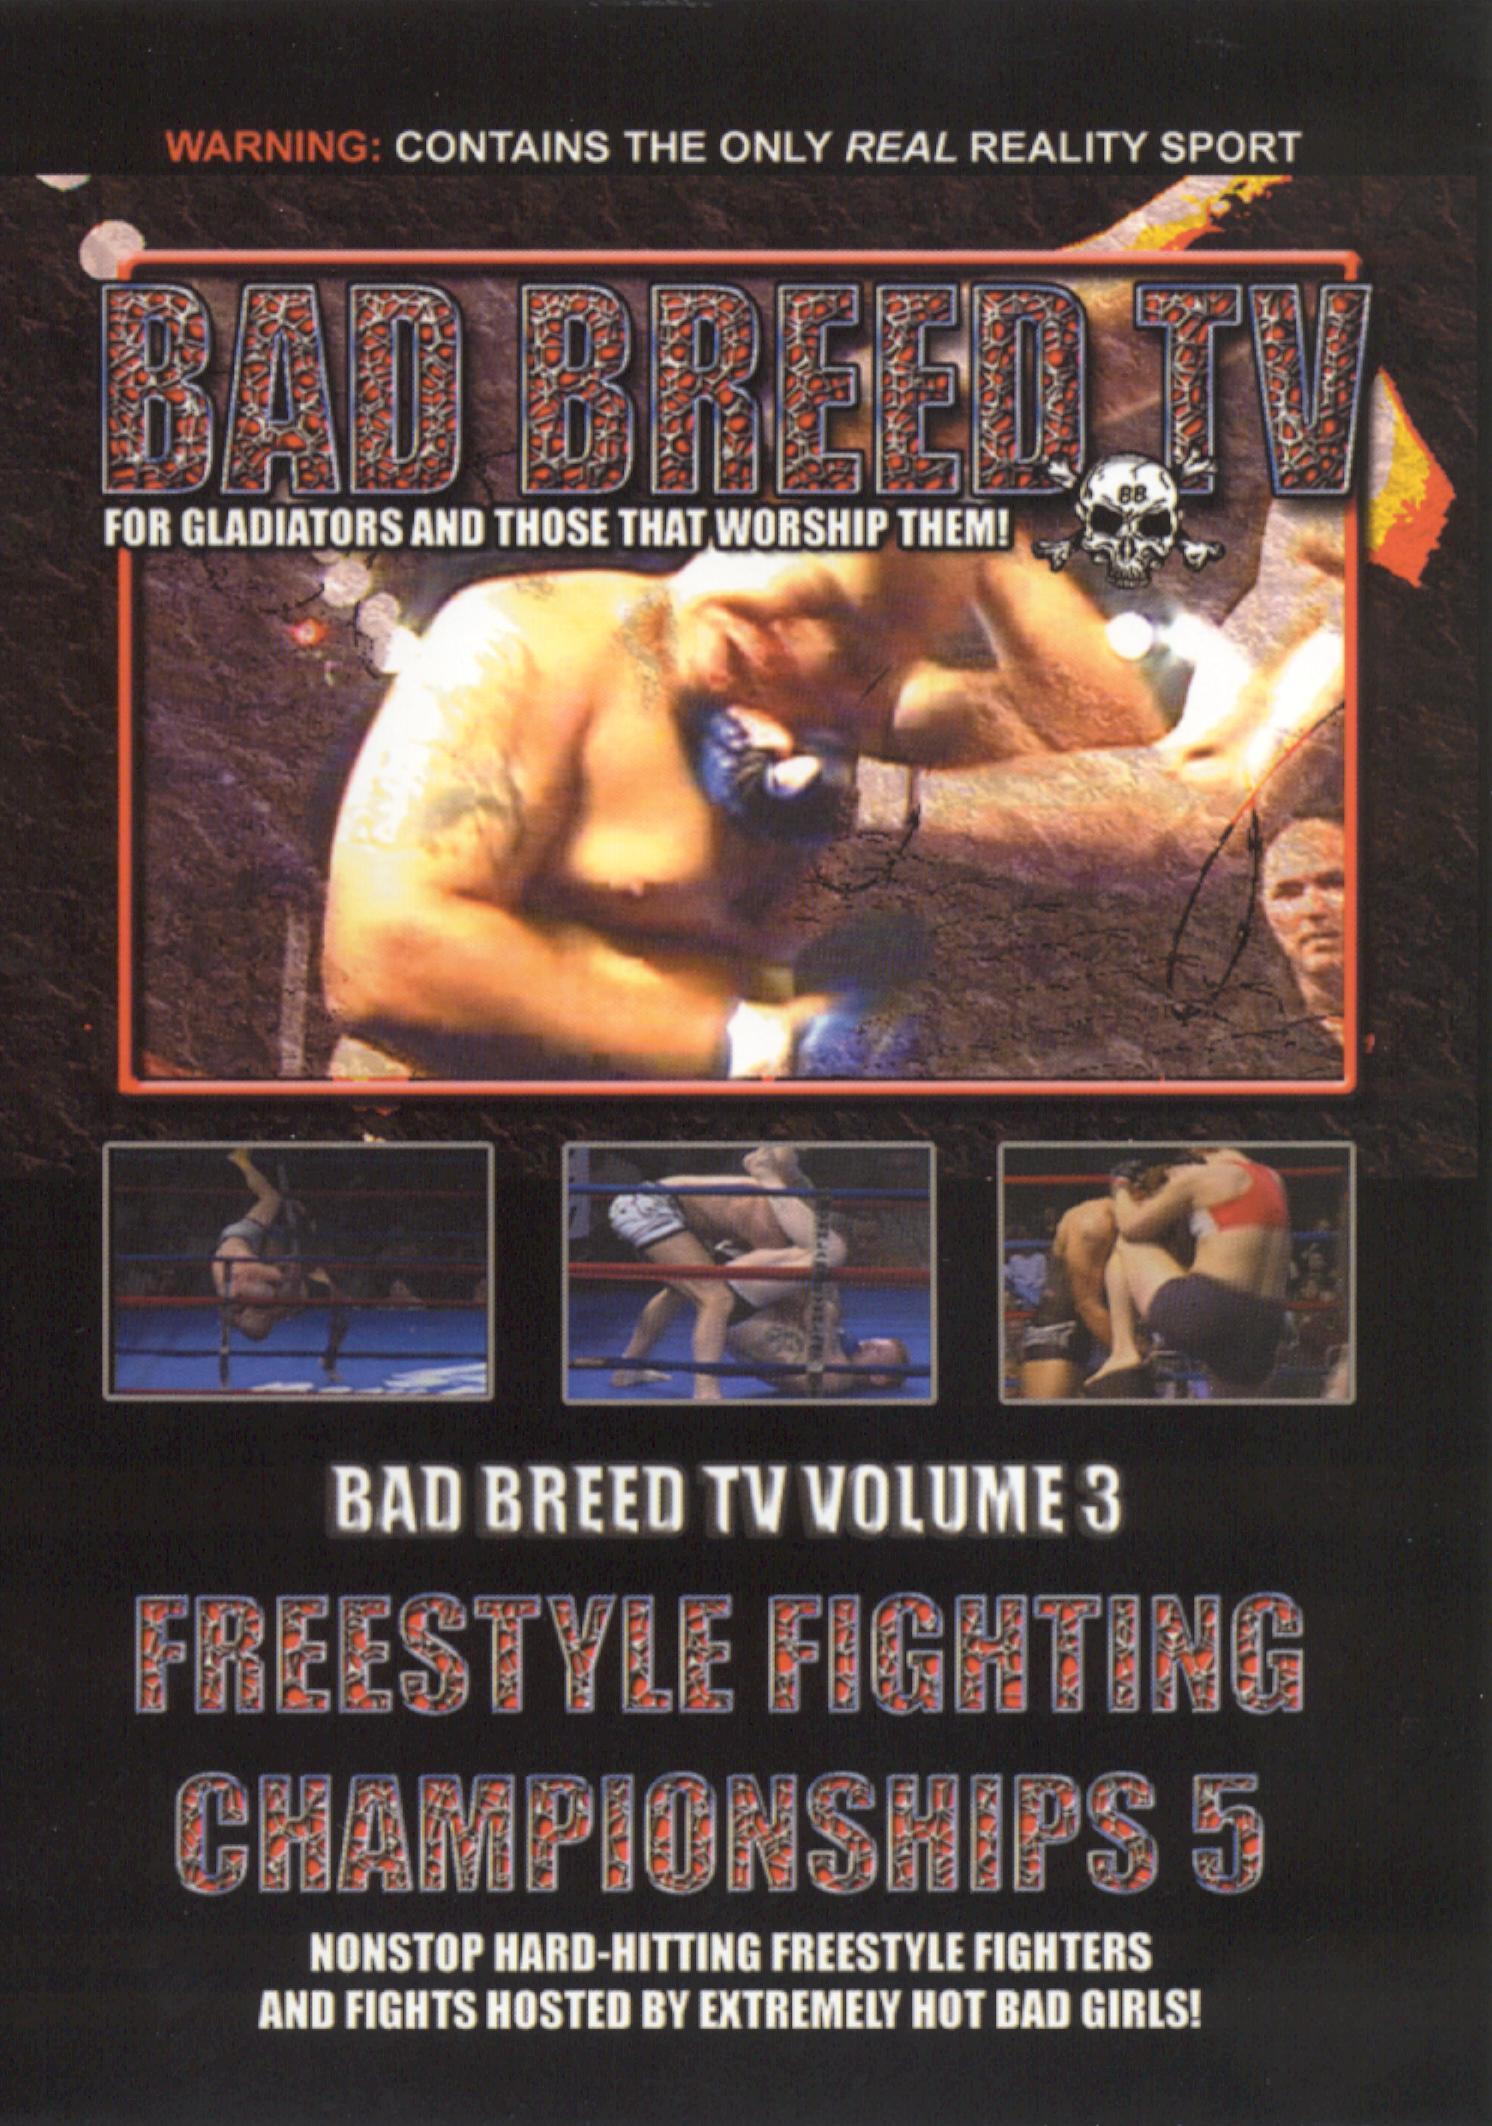 Bad Breed TV, Vol. 3: Freestyle Fighting Championships 5